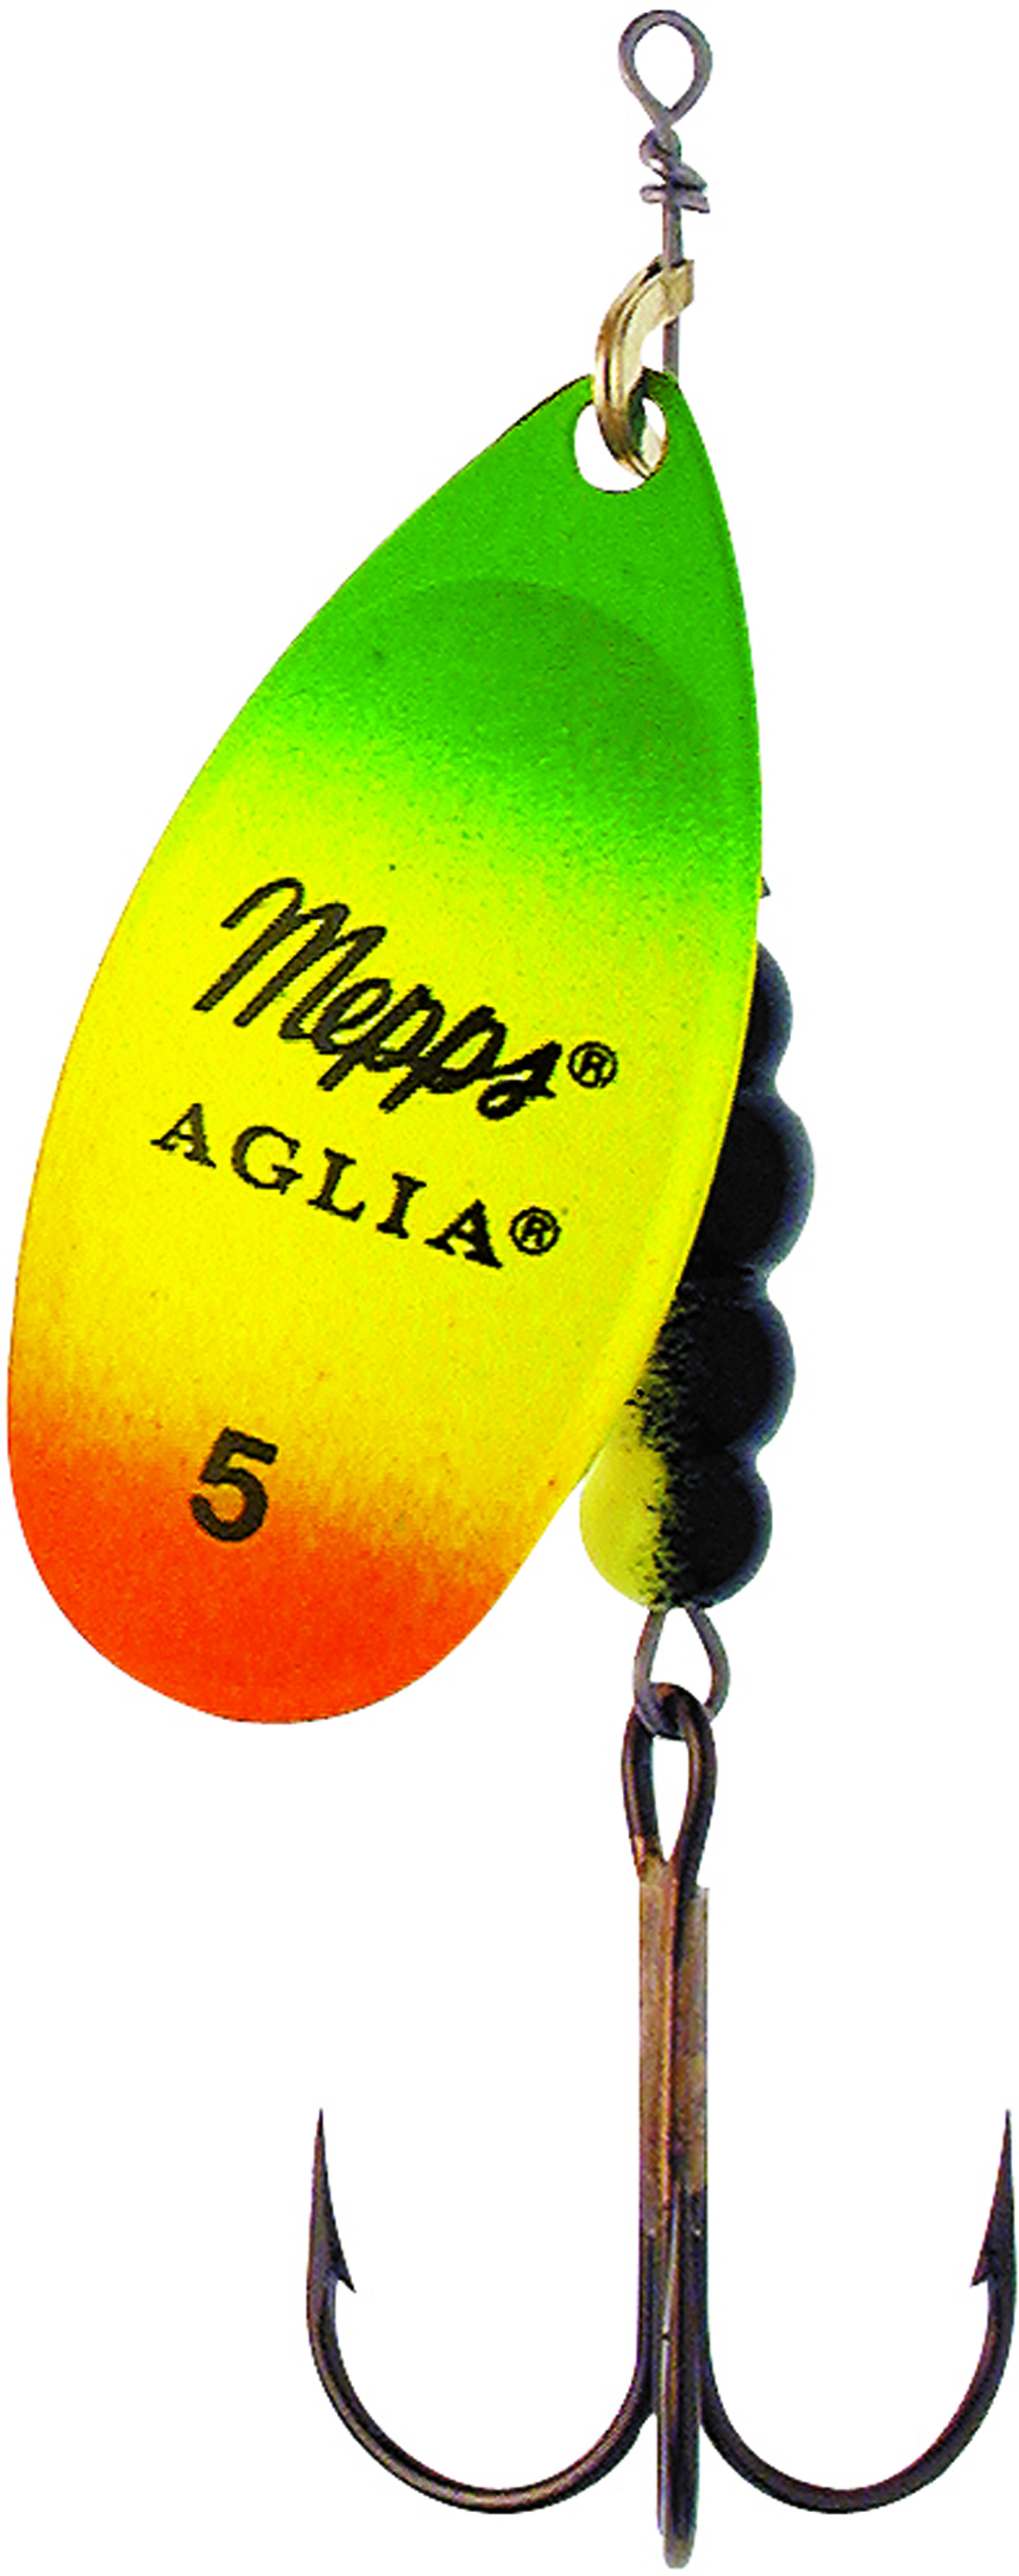 Mepps aglia hot tiger lures glasgow angling centre for Mepps fishing lures